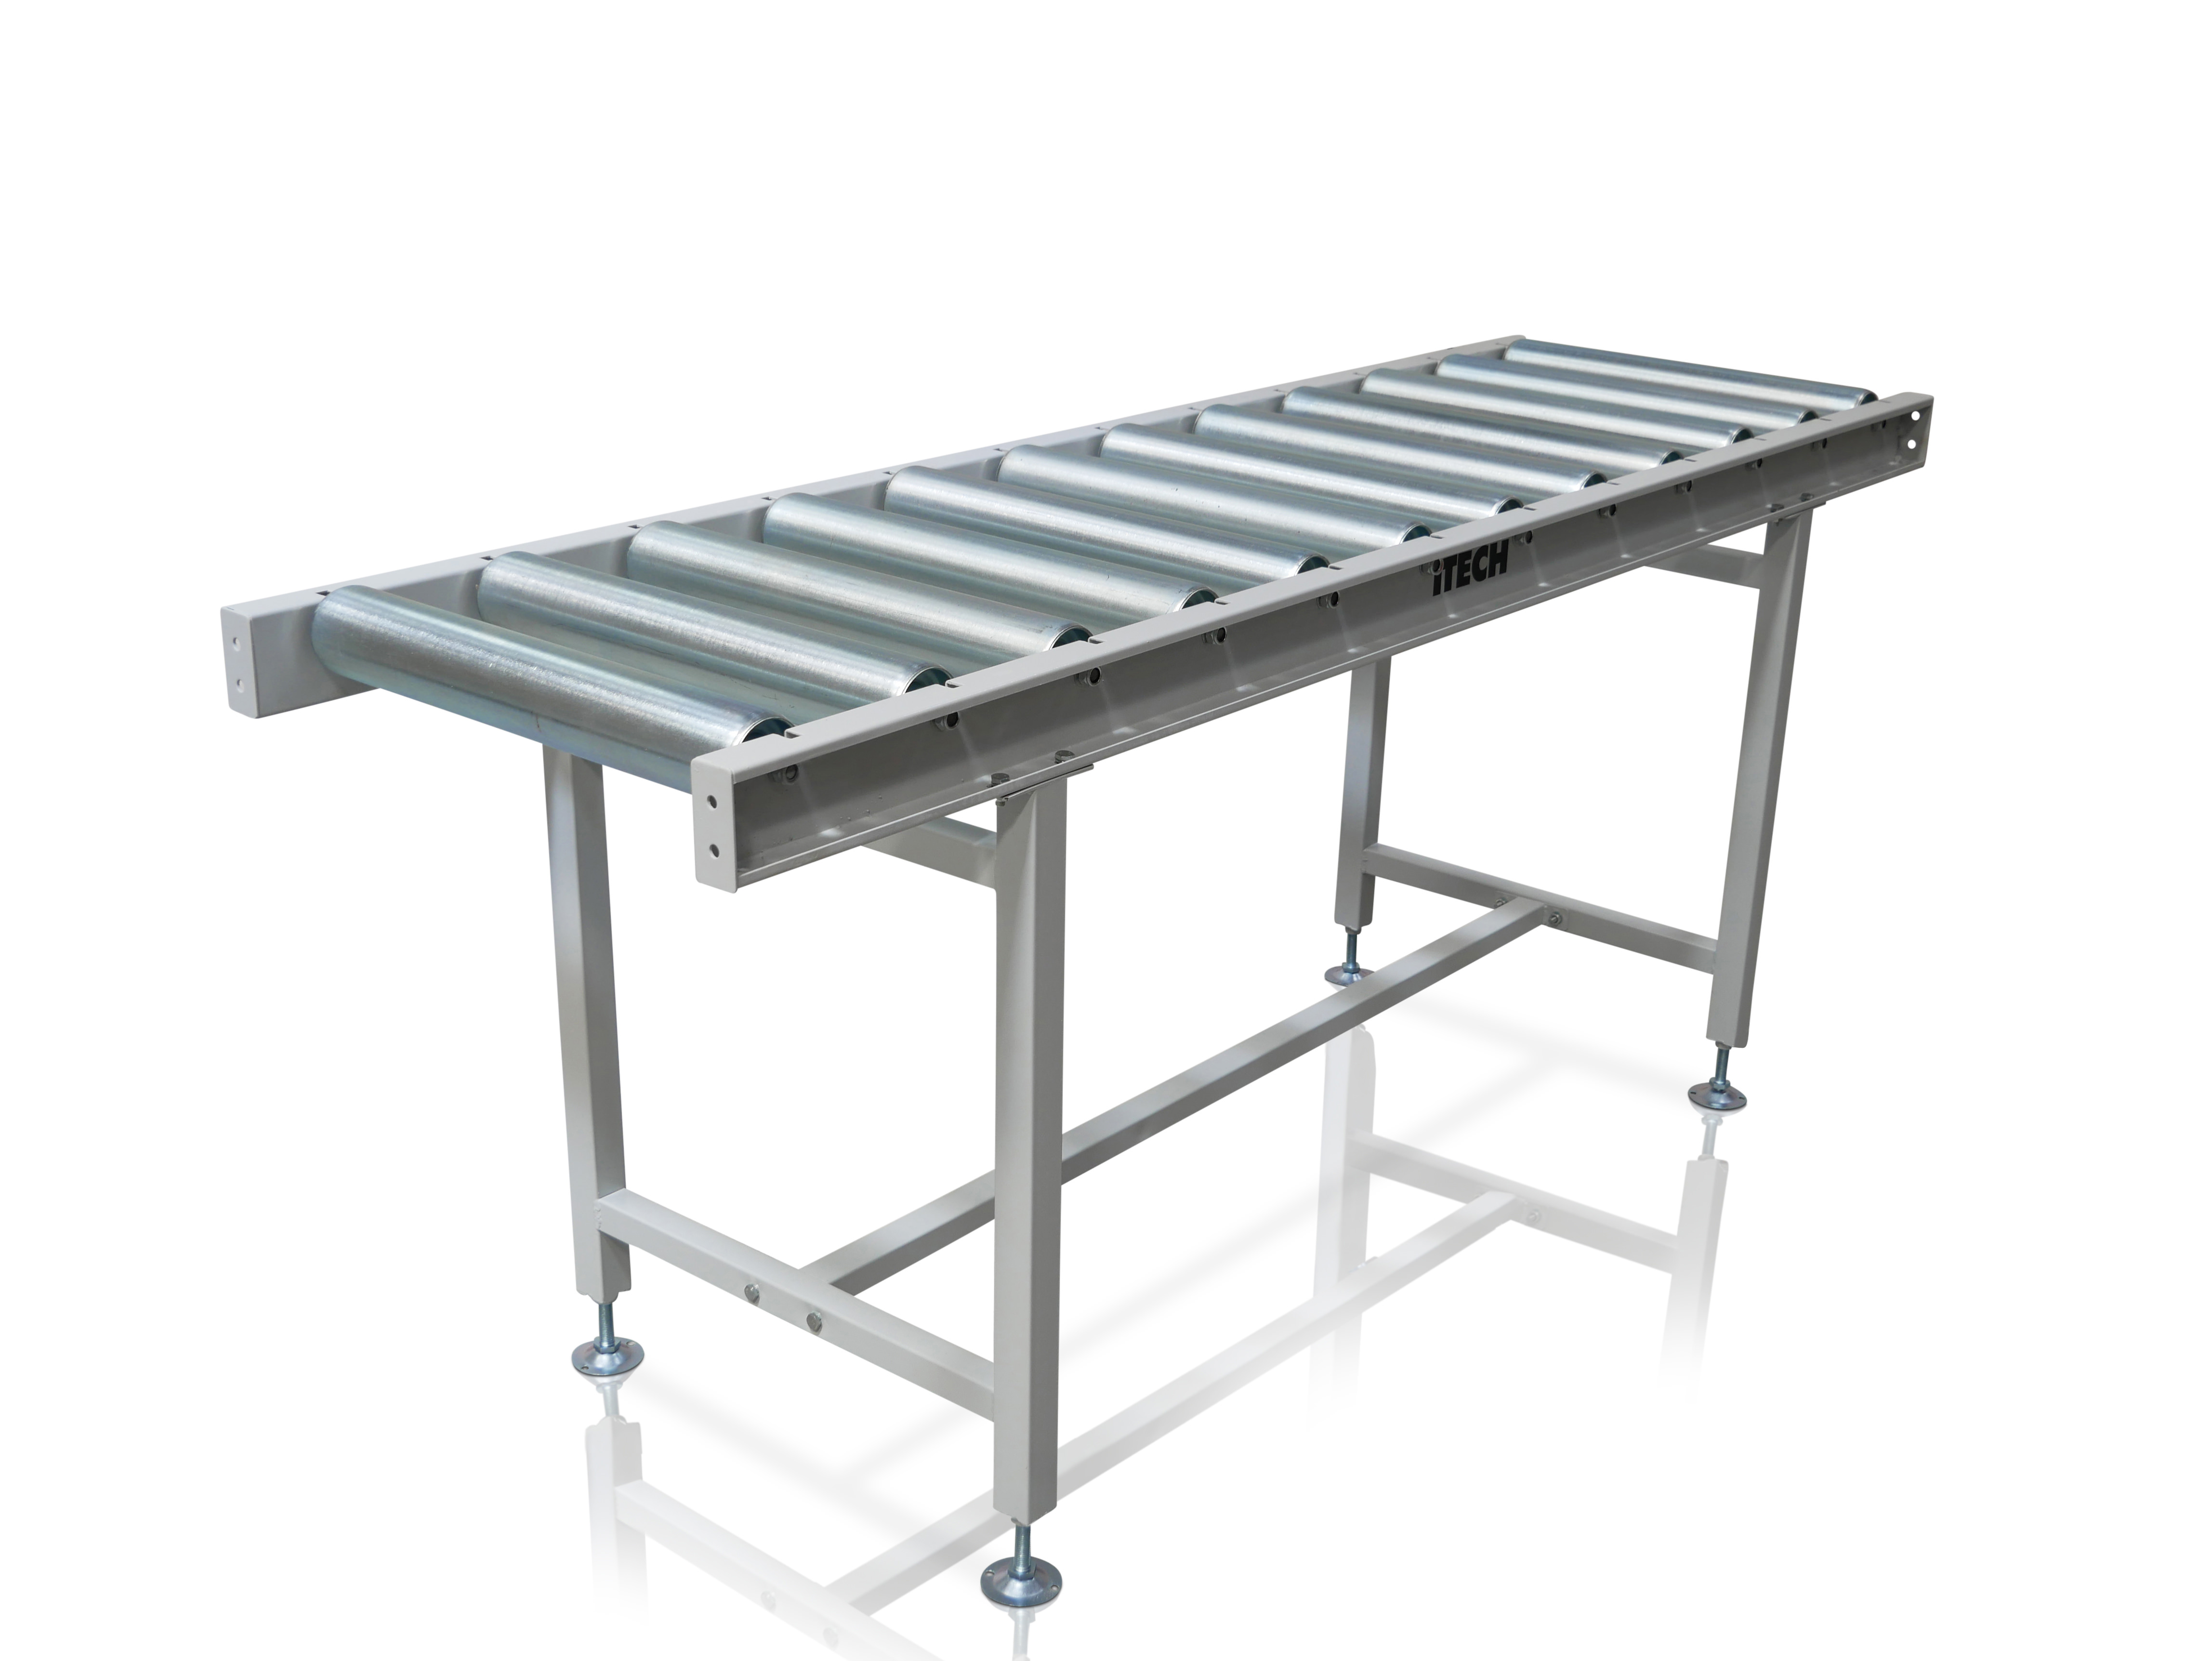 HD Roller Conveyor Table with NO Legs L = 200 cm